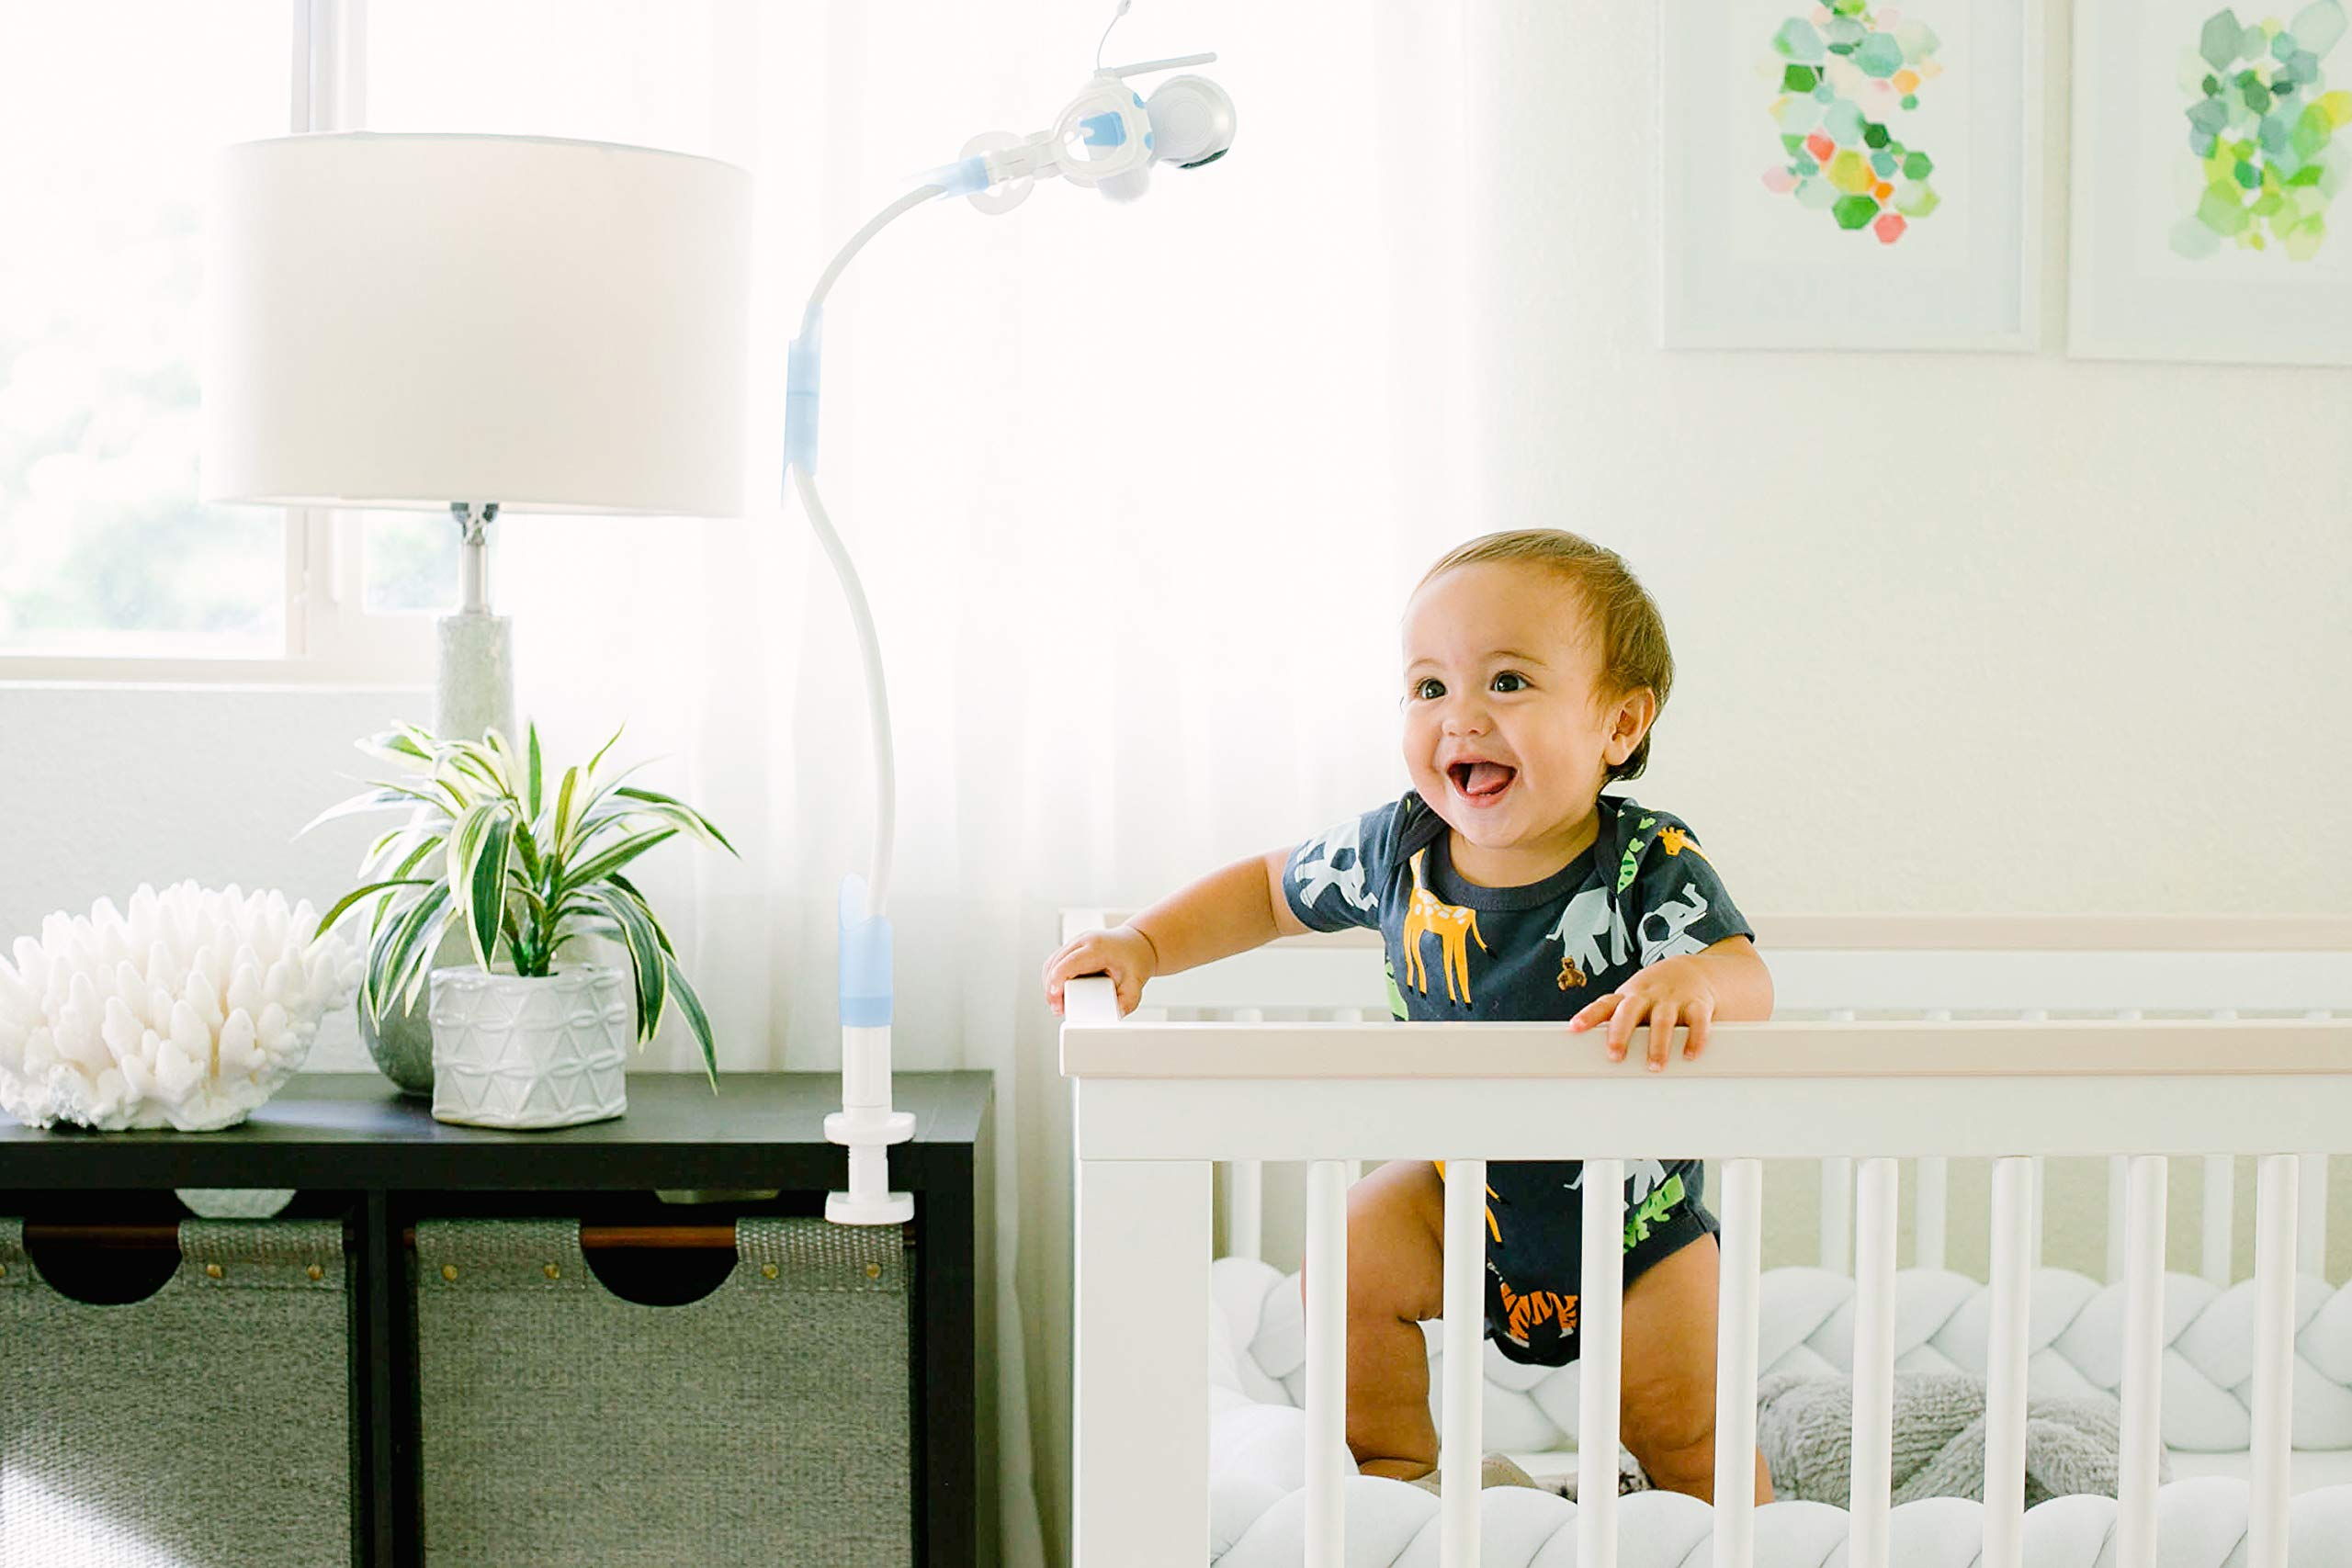 FlexxiCam   Universal Baby Camera Holder   Strong Flexible Baby Monitor Mount Shelf With Strap   No Drilling   A Safer Monitor Stand for Your Baby FlexxiCam GET THE BEST VIEW OF YOUR BABY - this flexible baby monitor holder allows you to get the perfect view of your infant. No more balancing of the baby camera on the edge of the cot. This baby camera shelf / holder can be attached to all kinds of furniture or a window sill to give you complete view of your sleeping baby. You can reposition and bend it to find the best spot from almost anywhere in the nursery. Your baby will never roll out of the view. No more coming back to readjust the monitor. UNIVERSAL FIT FOR MOST BABY MONITORS ON THE MARKET - this baby camera holder fits most baby video cameras with a base / stand less than 3.8 inches wide and 1.5 inches tall. We've tested the shelf with several leading baby monitor brands on the market (see our photos for examples of compatible camera types). Do not use FlexxiCam with a baby monitor that does not have a separate base / stand. If unsure, ask us if your baby monitor will fit. And if not, we'll always take it back! EASY TO USE, NO STICKING ON WALLS, NO DRILLING - the baby camera shelf has a strong clamp that holds securely to most surfaces, and is easy to attach on furniture in the room. Bend and rotate it to change the baby monitor position as required for best results. This camera holder is secure and strong. The baby video camera is firmly affixed within the clamp and supported by a rubber silicone strip. The holder does not damage the cot or furniture. PLEASE FOLLOW THE INSTALLATION INSTRUCTIONS. 4